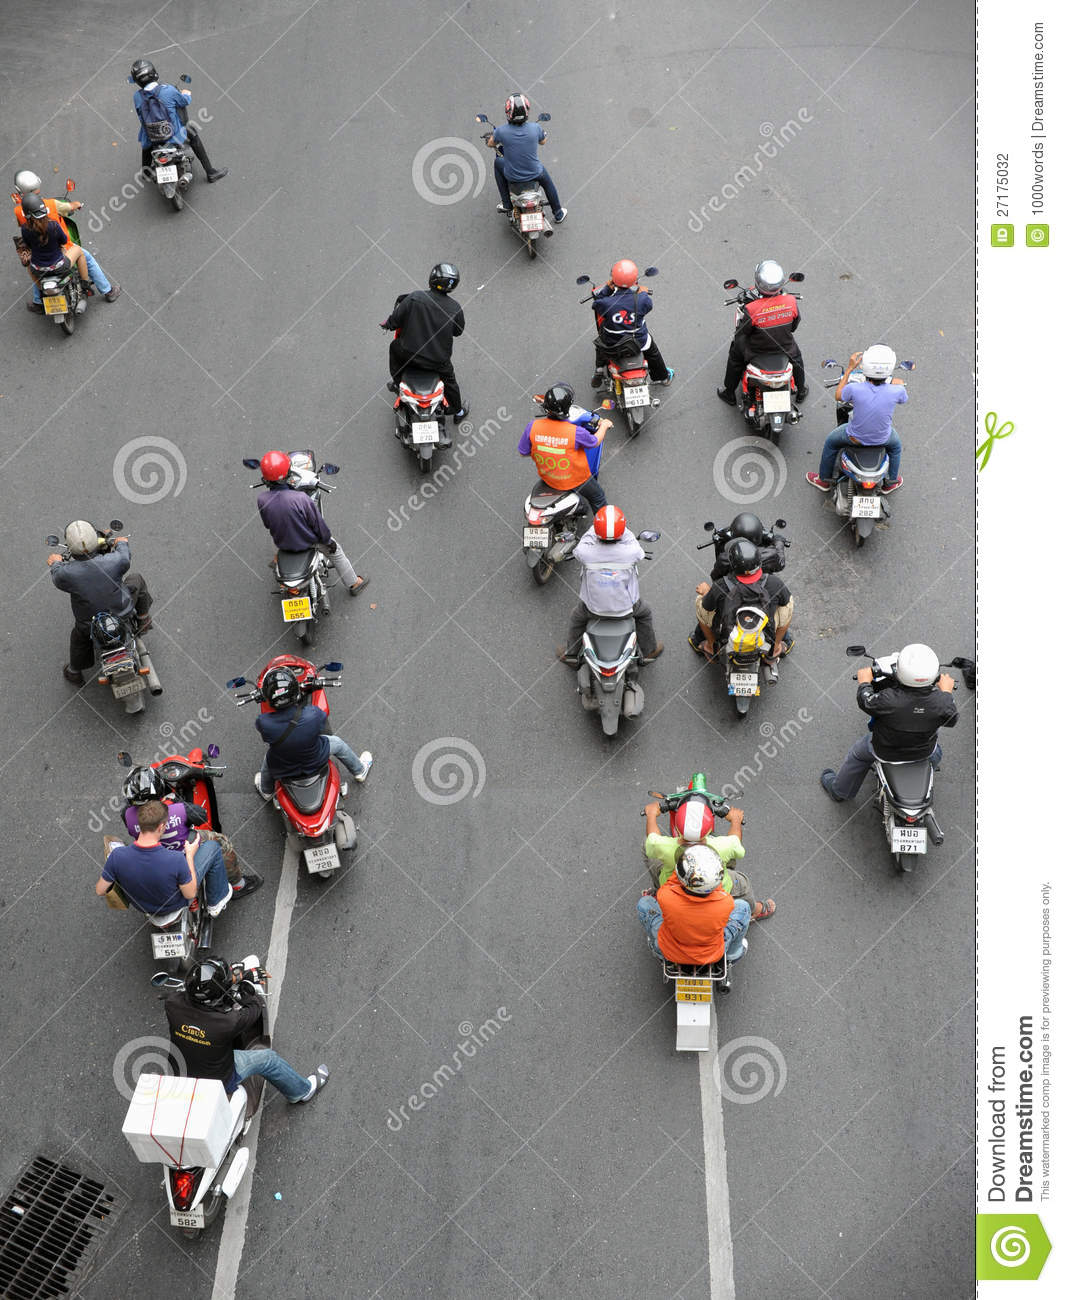 Motorcyclists Wait at a Junction